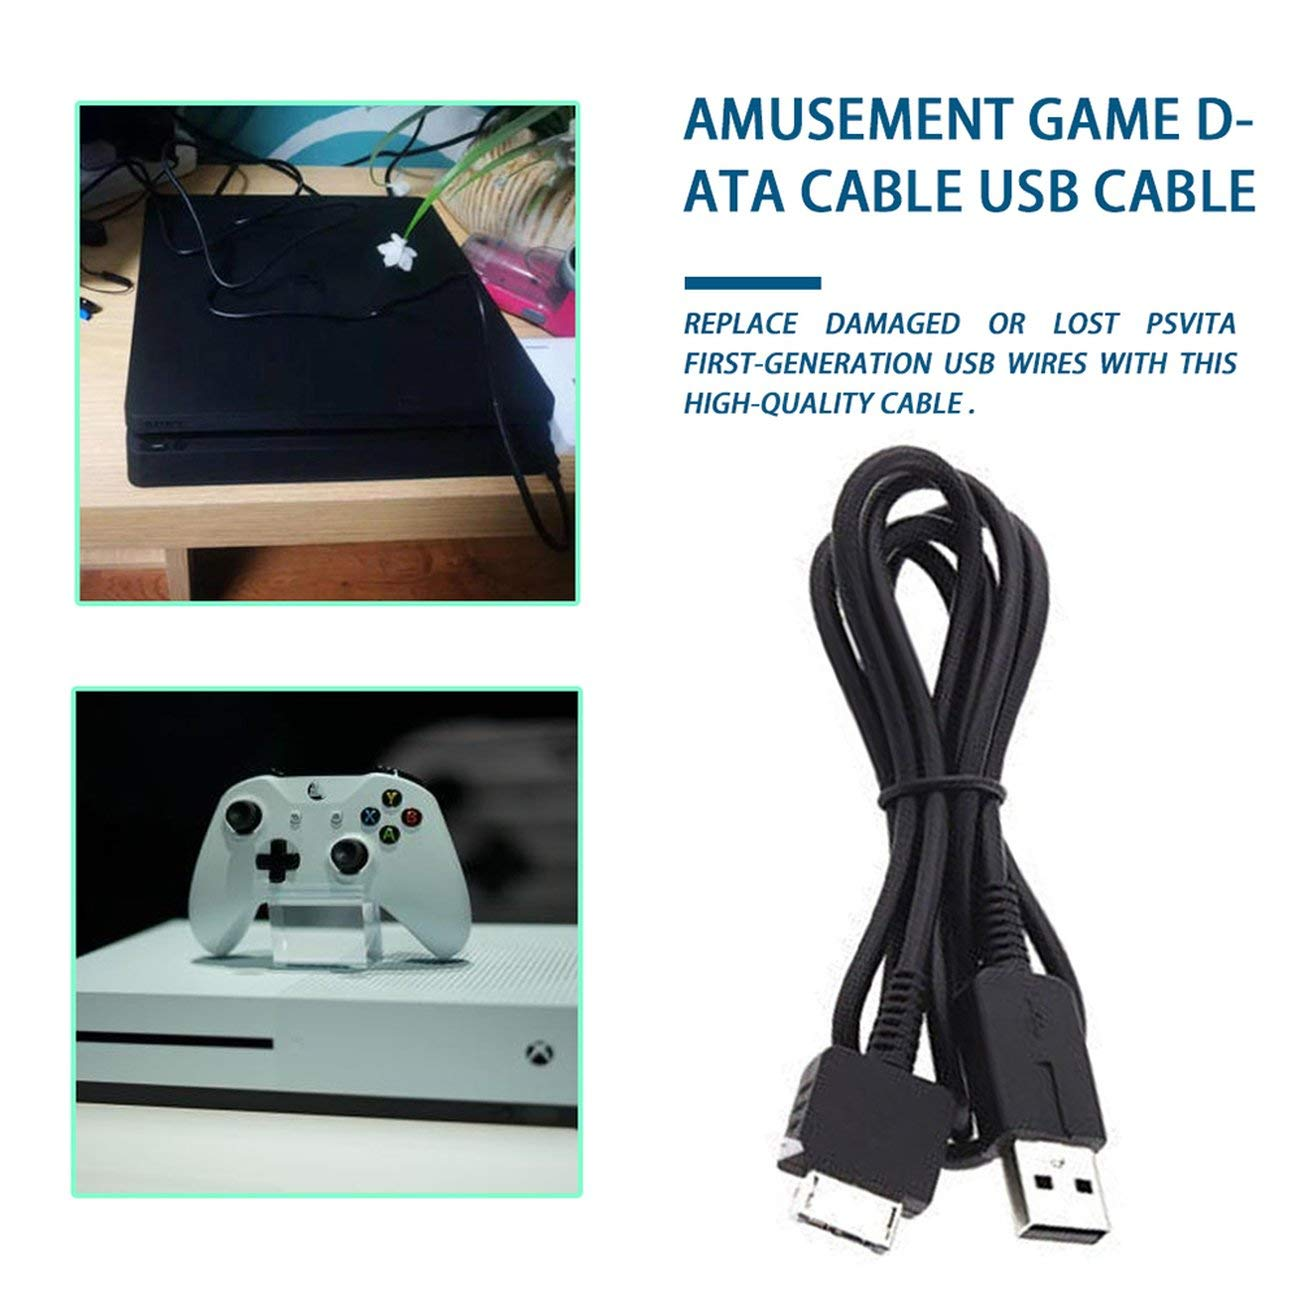 Fannty 2 in 1 USB Charging Lead Charger Cable for Sony Playstation PS Vita